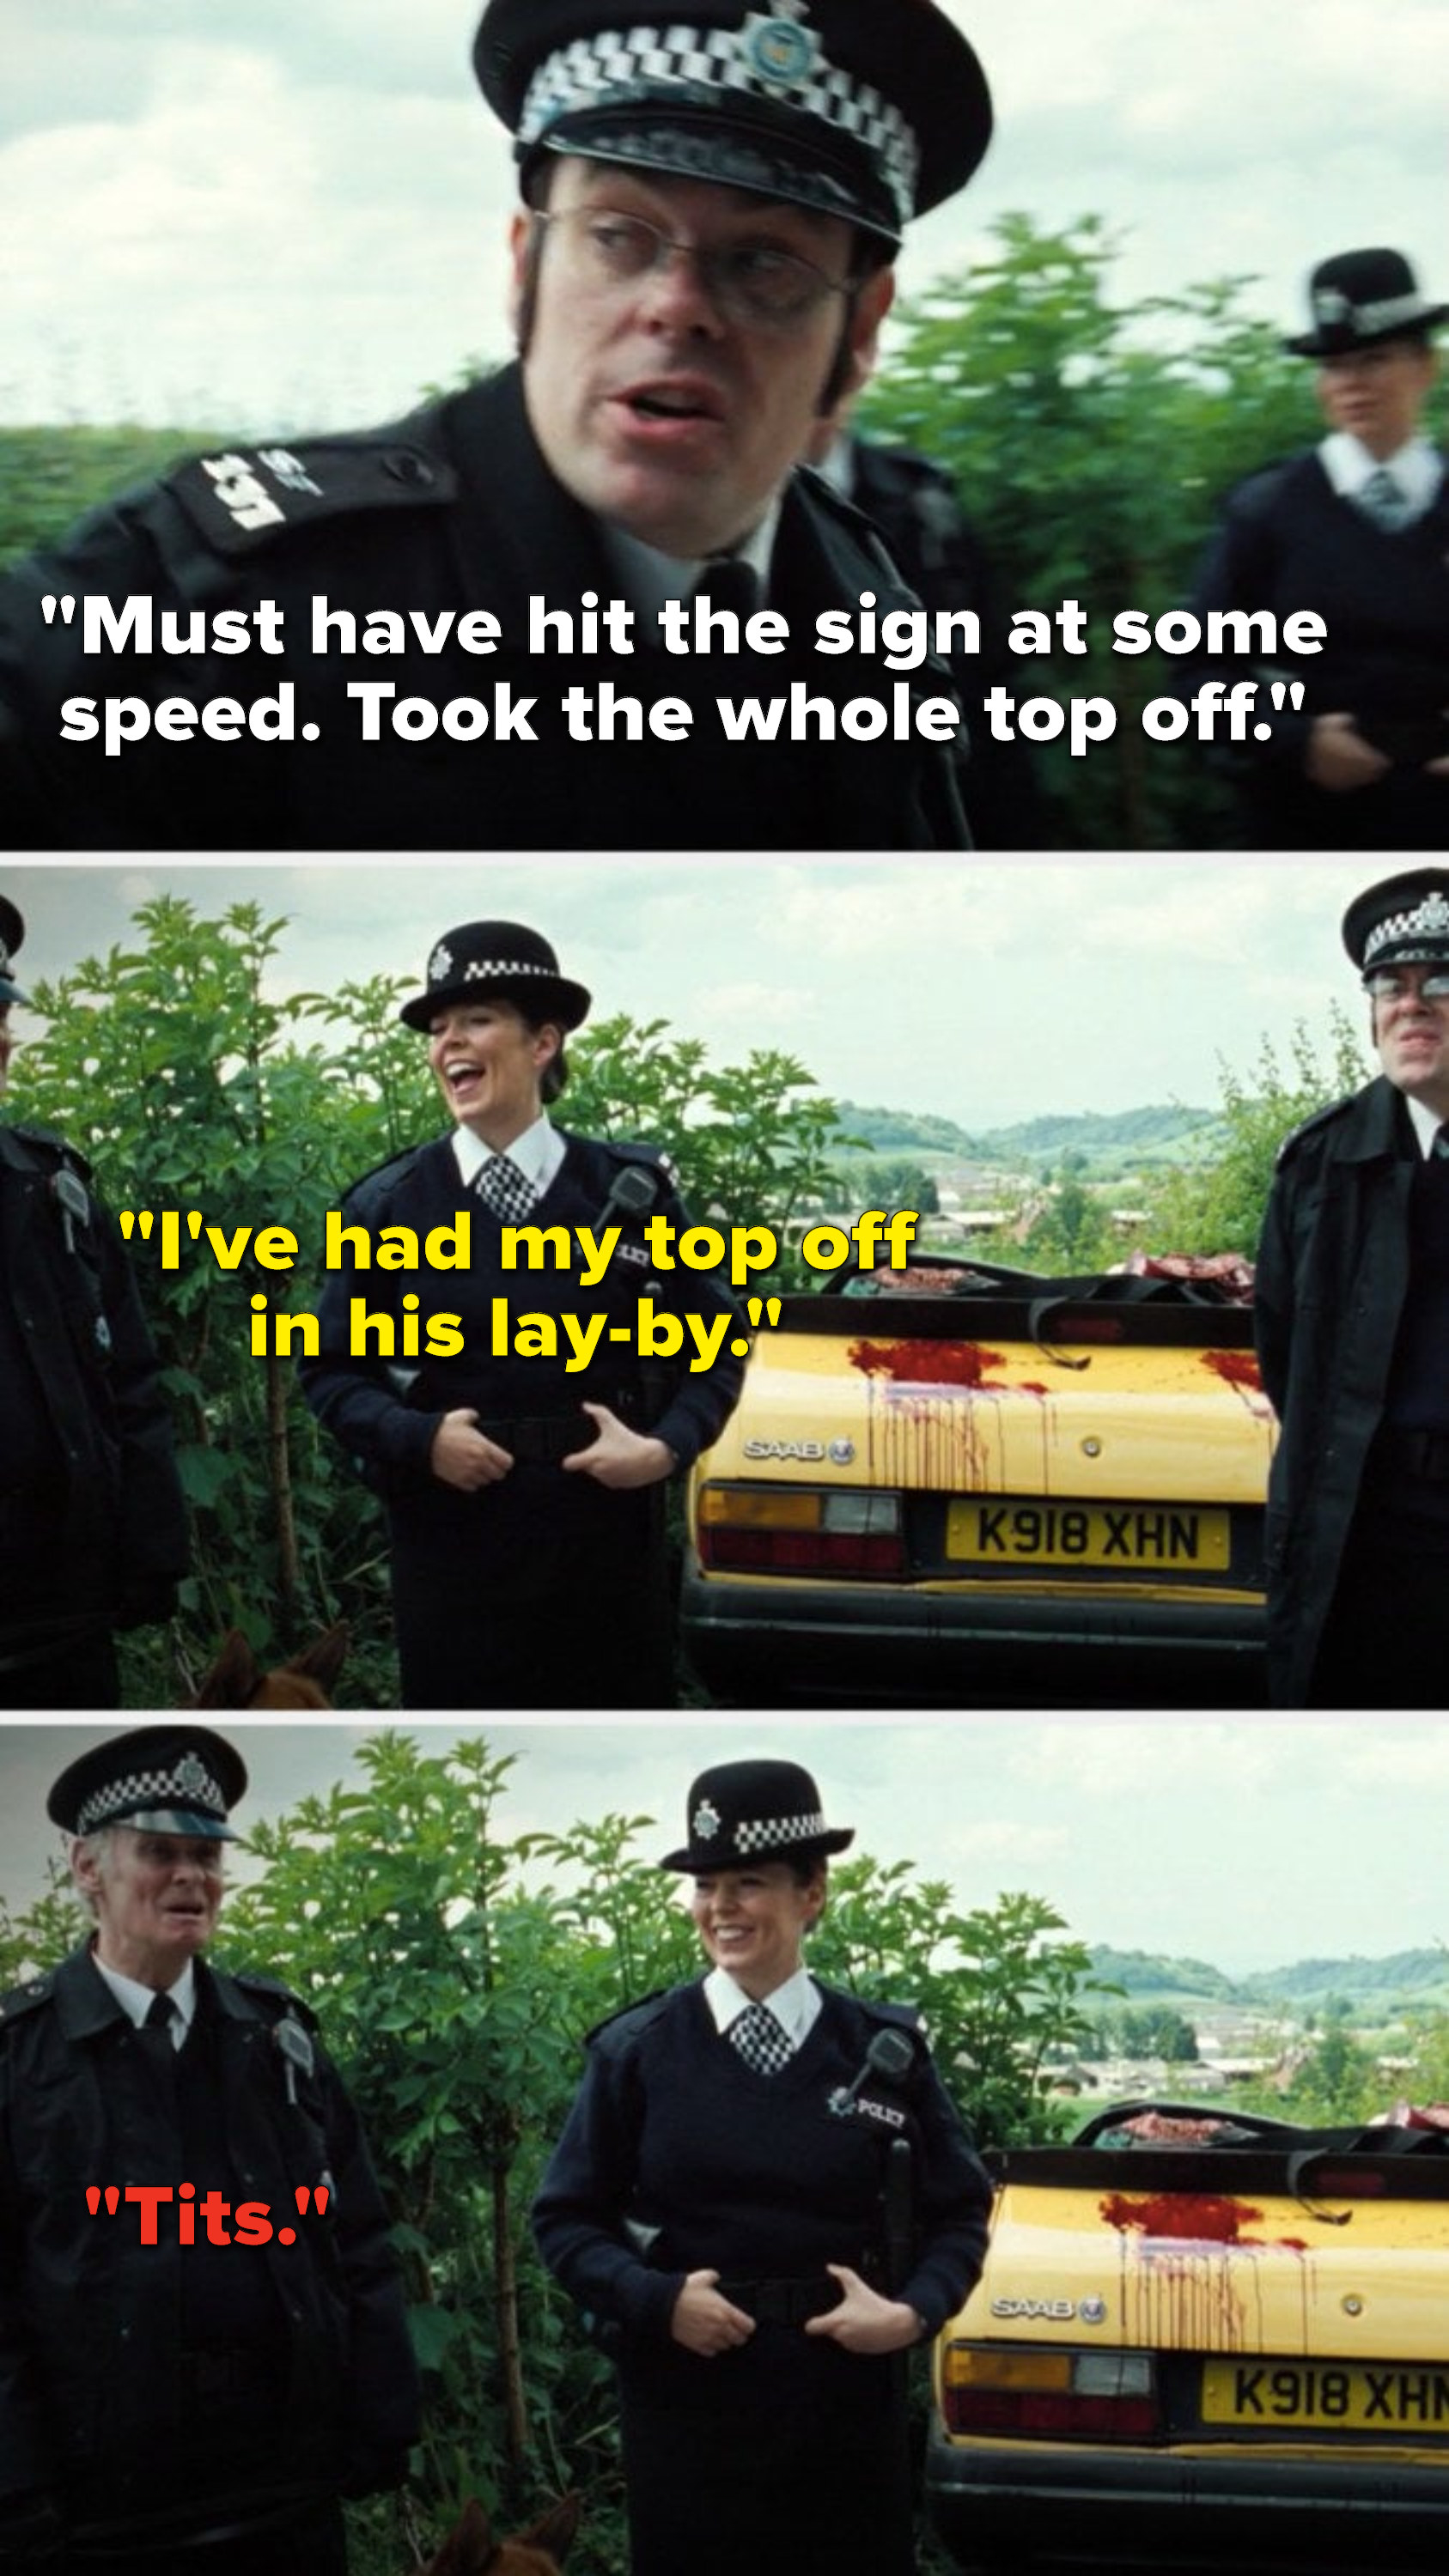 """Sergeant Fisher says, """"Must have hit the sign at some speed, took the whole top off,"""" PC Doris Thatcher says, """"I've had my top off in his lay-by,"""" and PC Bob Walker says, """"Tits"""""""